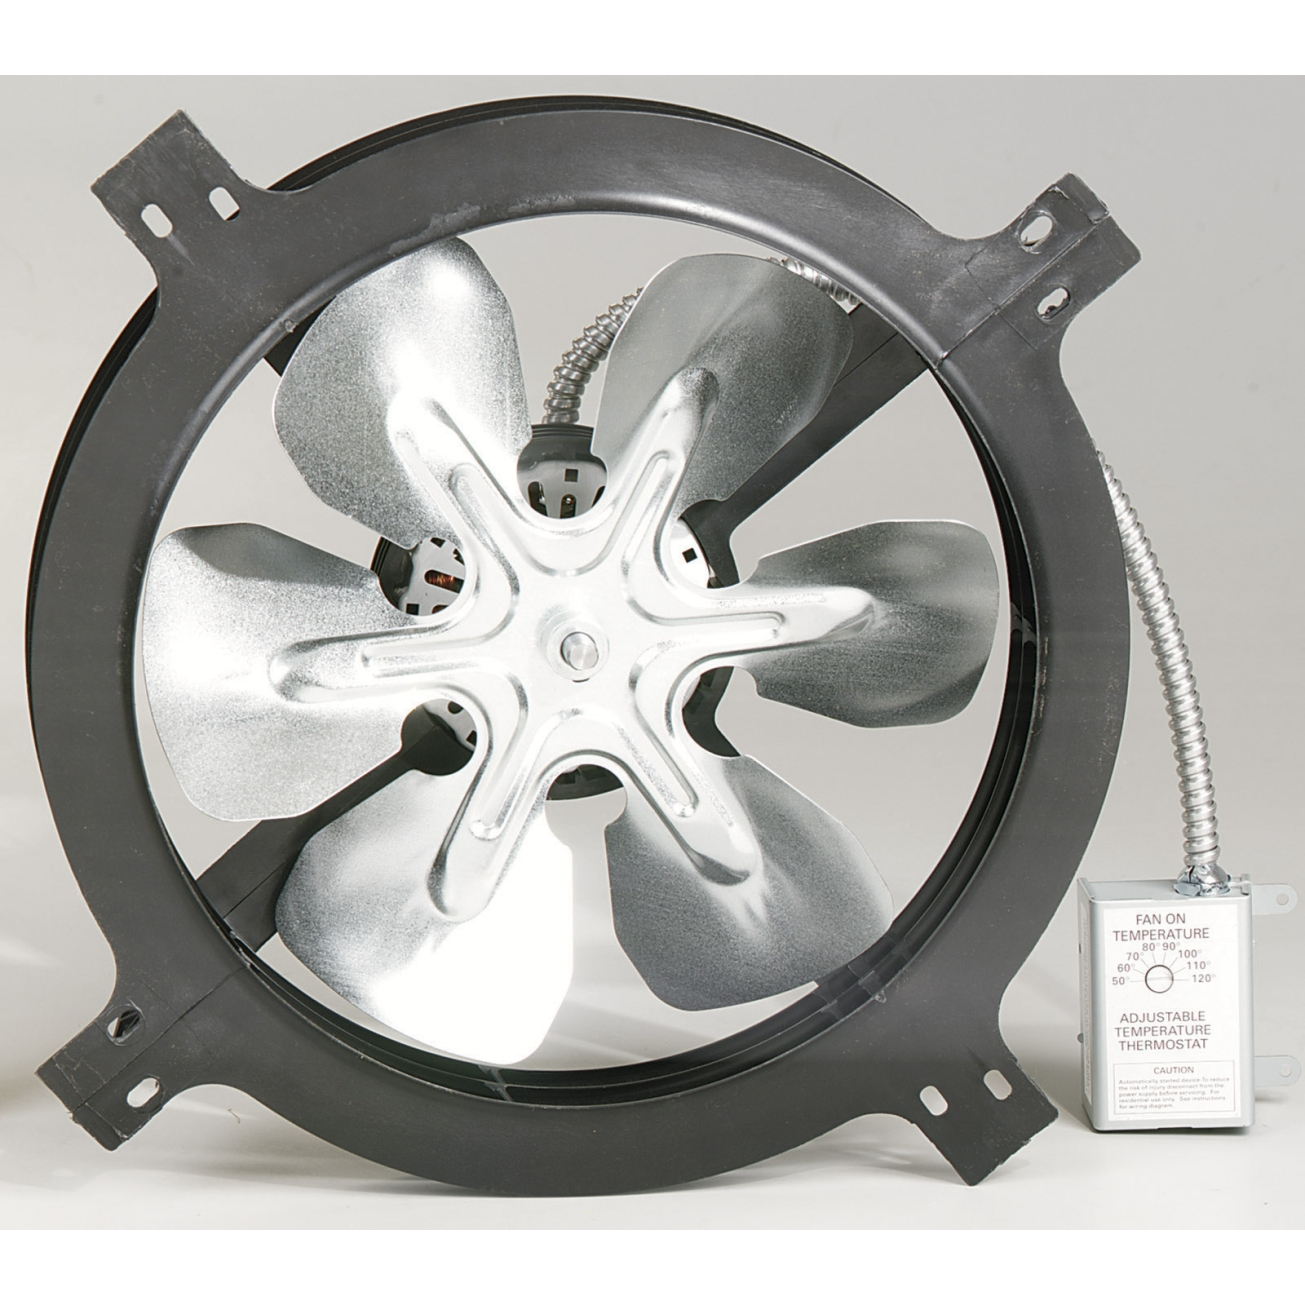 Air Vent Attic Aire 1050 Cfm Gable Mount Power Fan 53315 within size 1305 X 1305